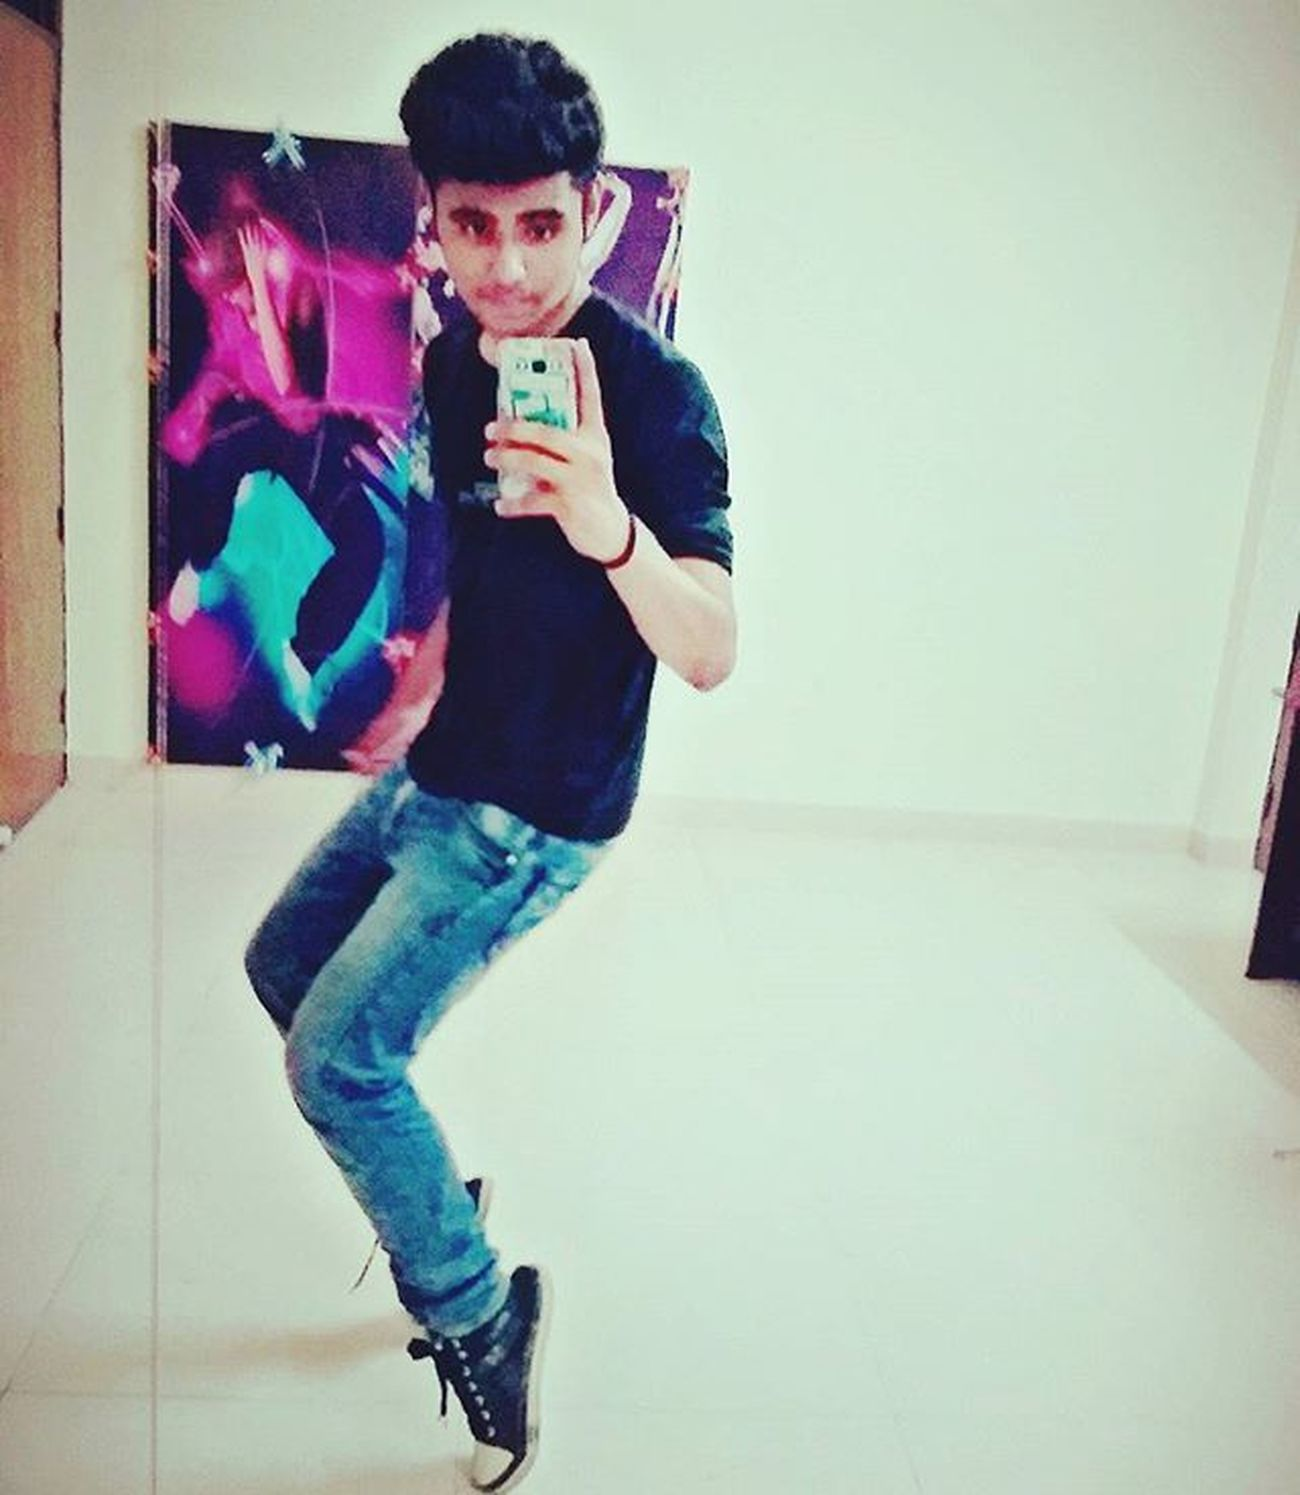 SELFIE_IN_MJ_STYLE International Dance Day DANCE_WORKOUT